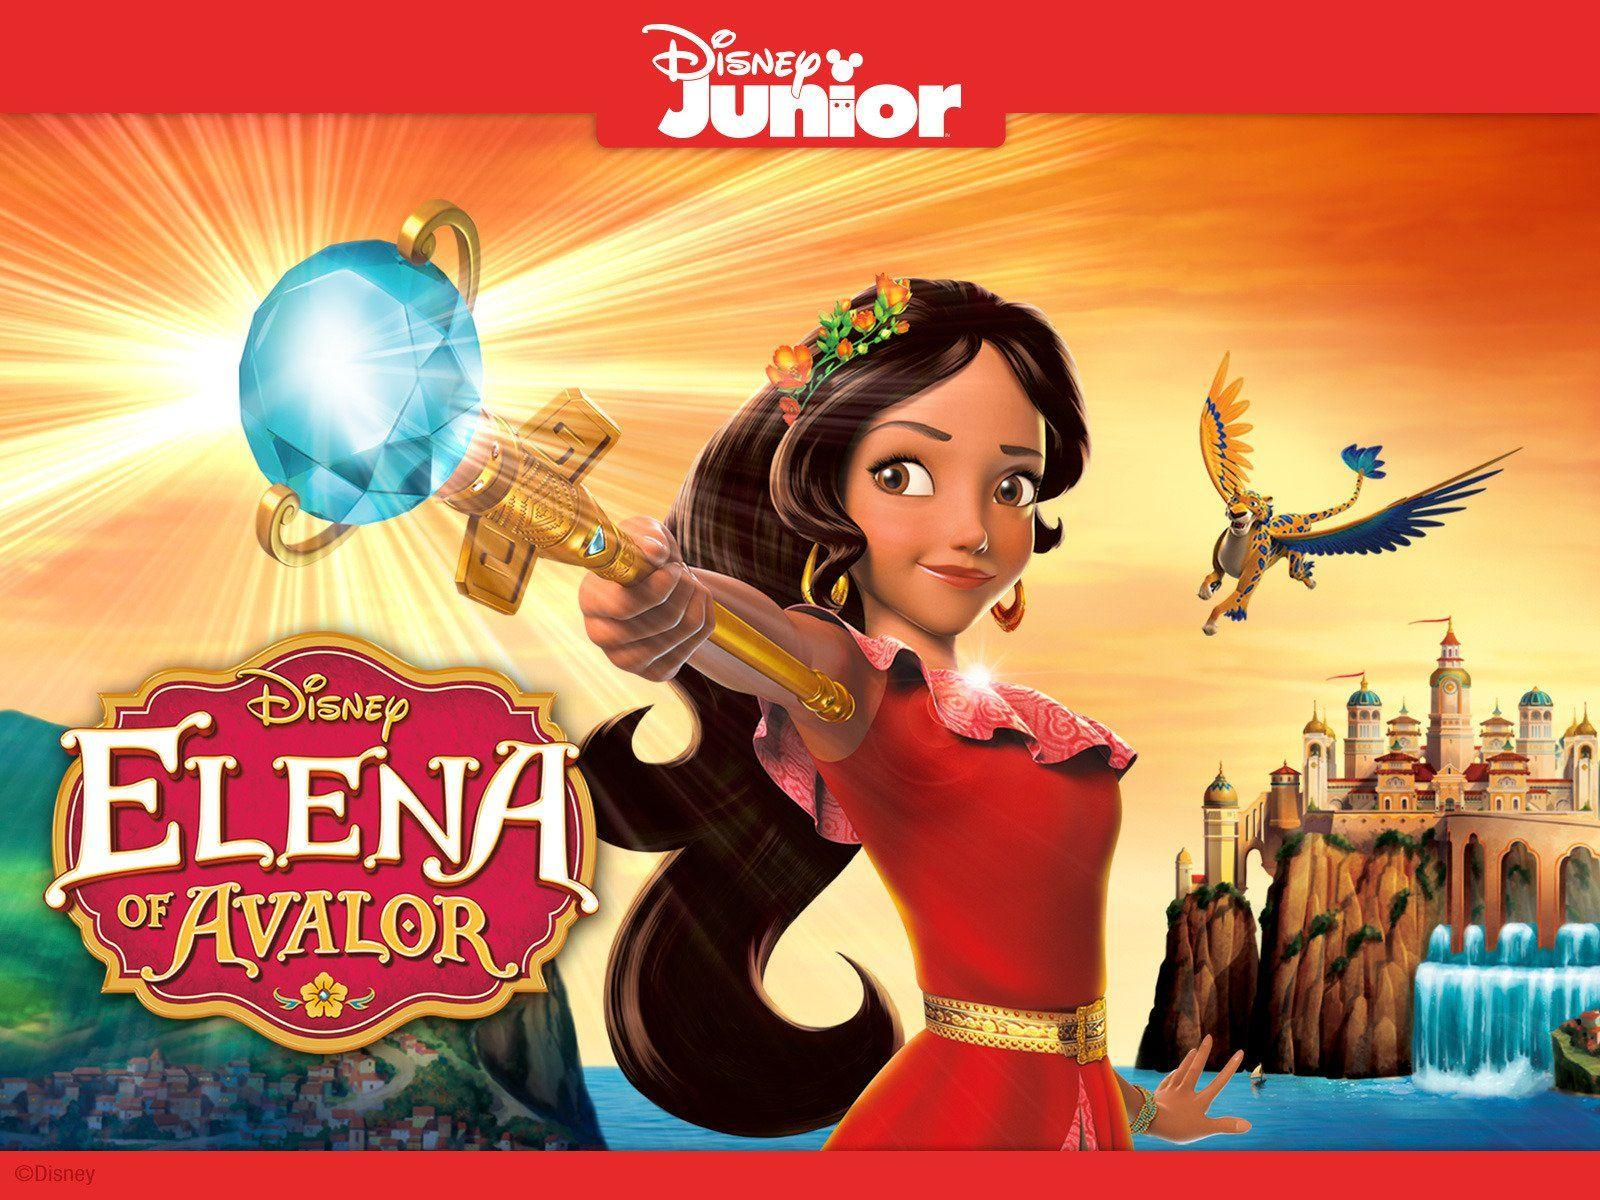 Elena of Avalor Volume 1: Amazon Digital Services LLC